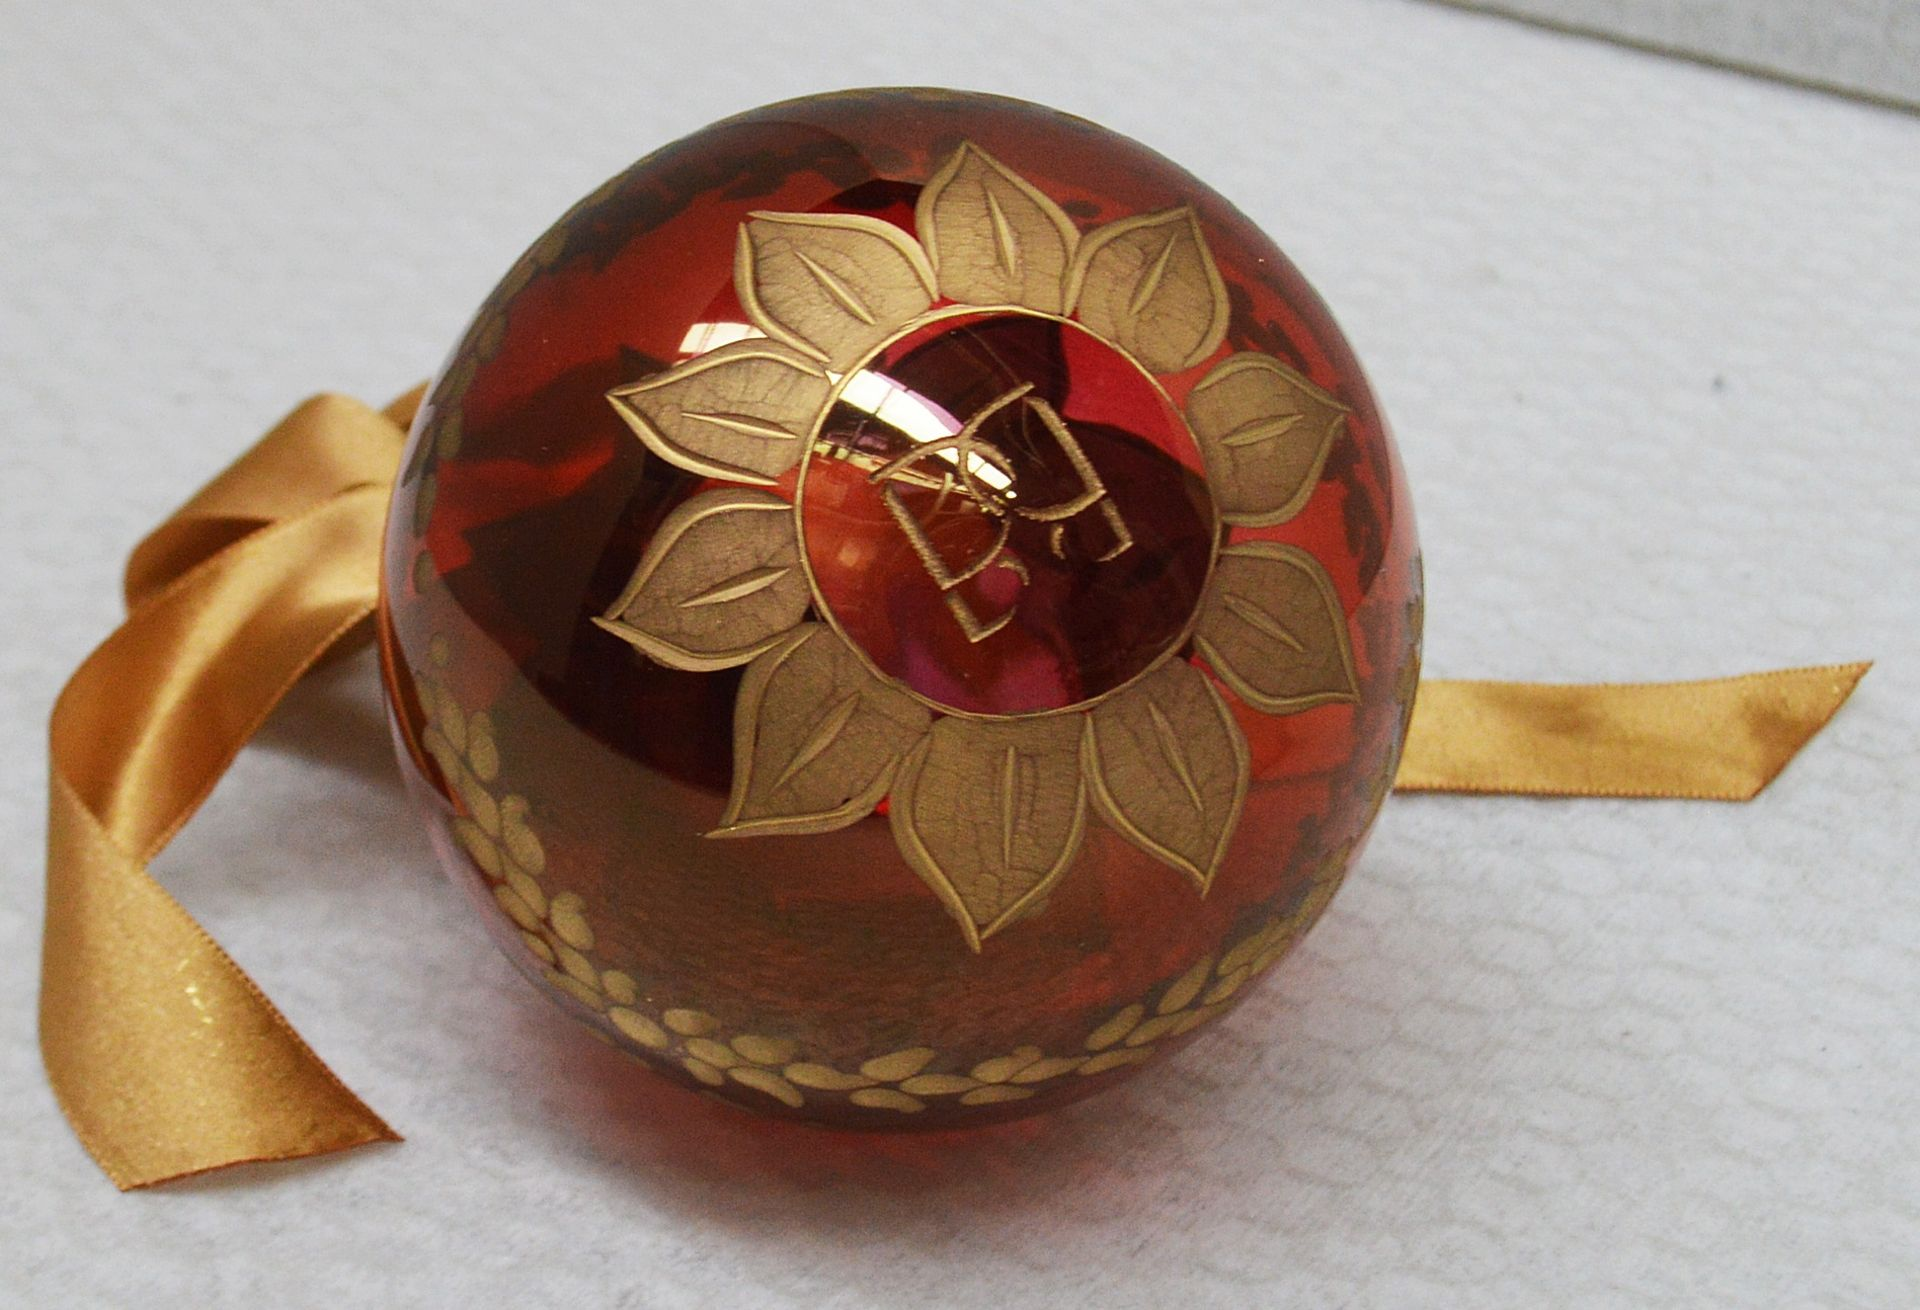 1 x BALDI 'Home Jewels' Italian Hand-crafted Artisan Christmas Tree Decoration In Red And Gold - - Image 3 of 5